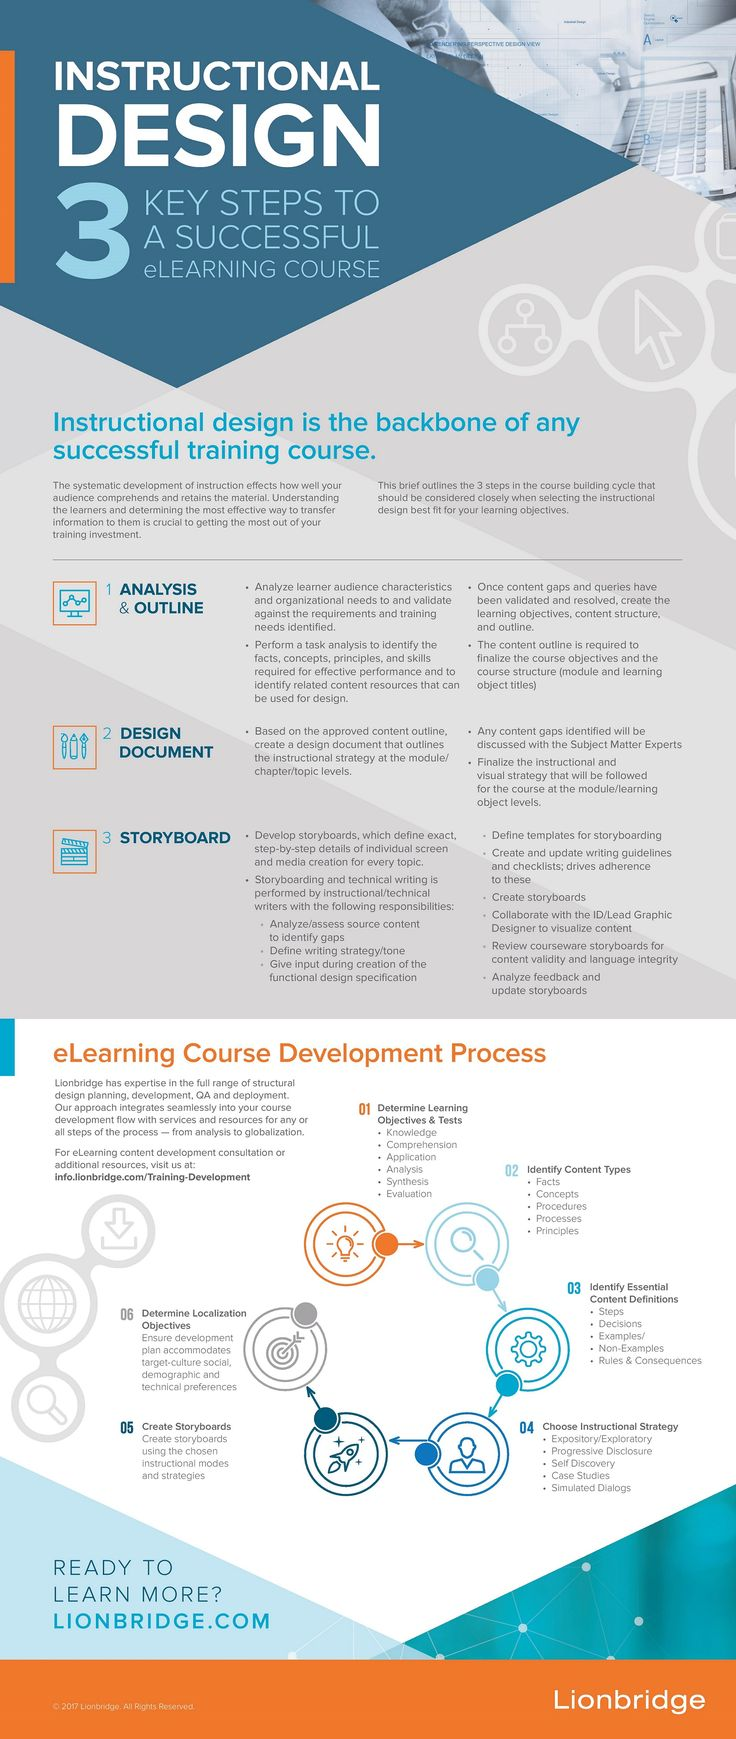 3 Key Steps to a Successful eLearning Course Infographic - http://elearninginfographics.com/3-key-steps-successful-elearning-course-infographic/